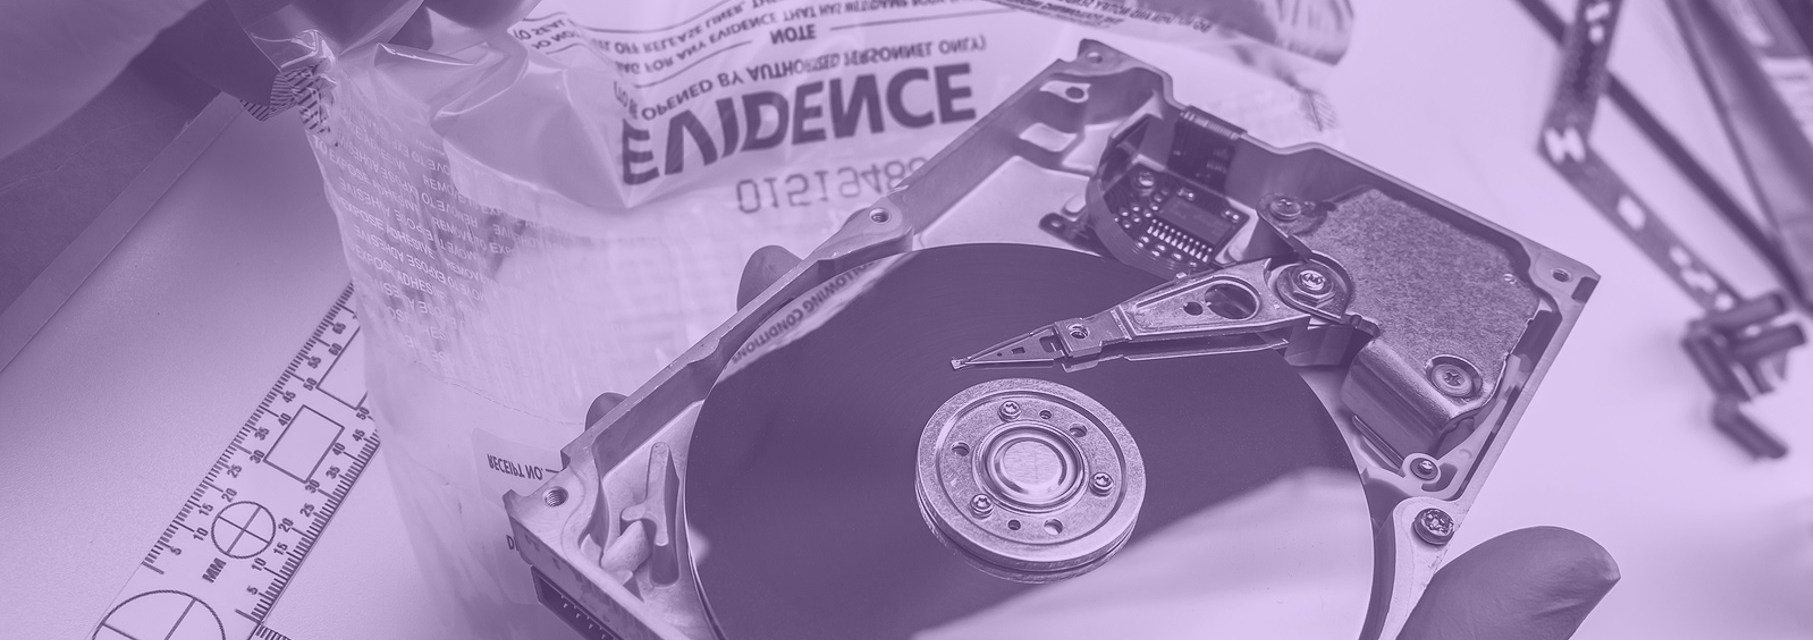 Acquisition of Digital Evidence for Forensic Investigation